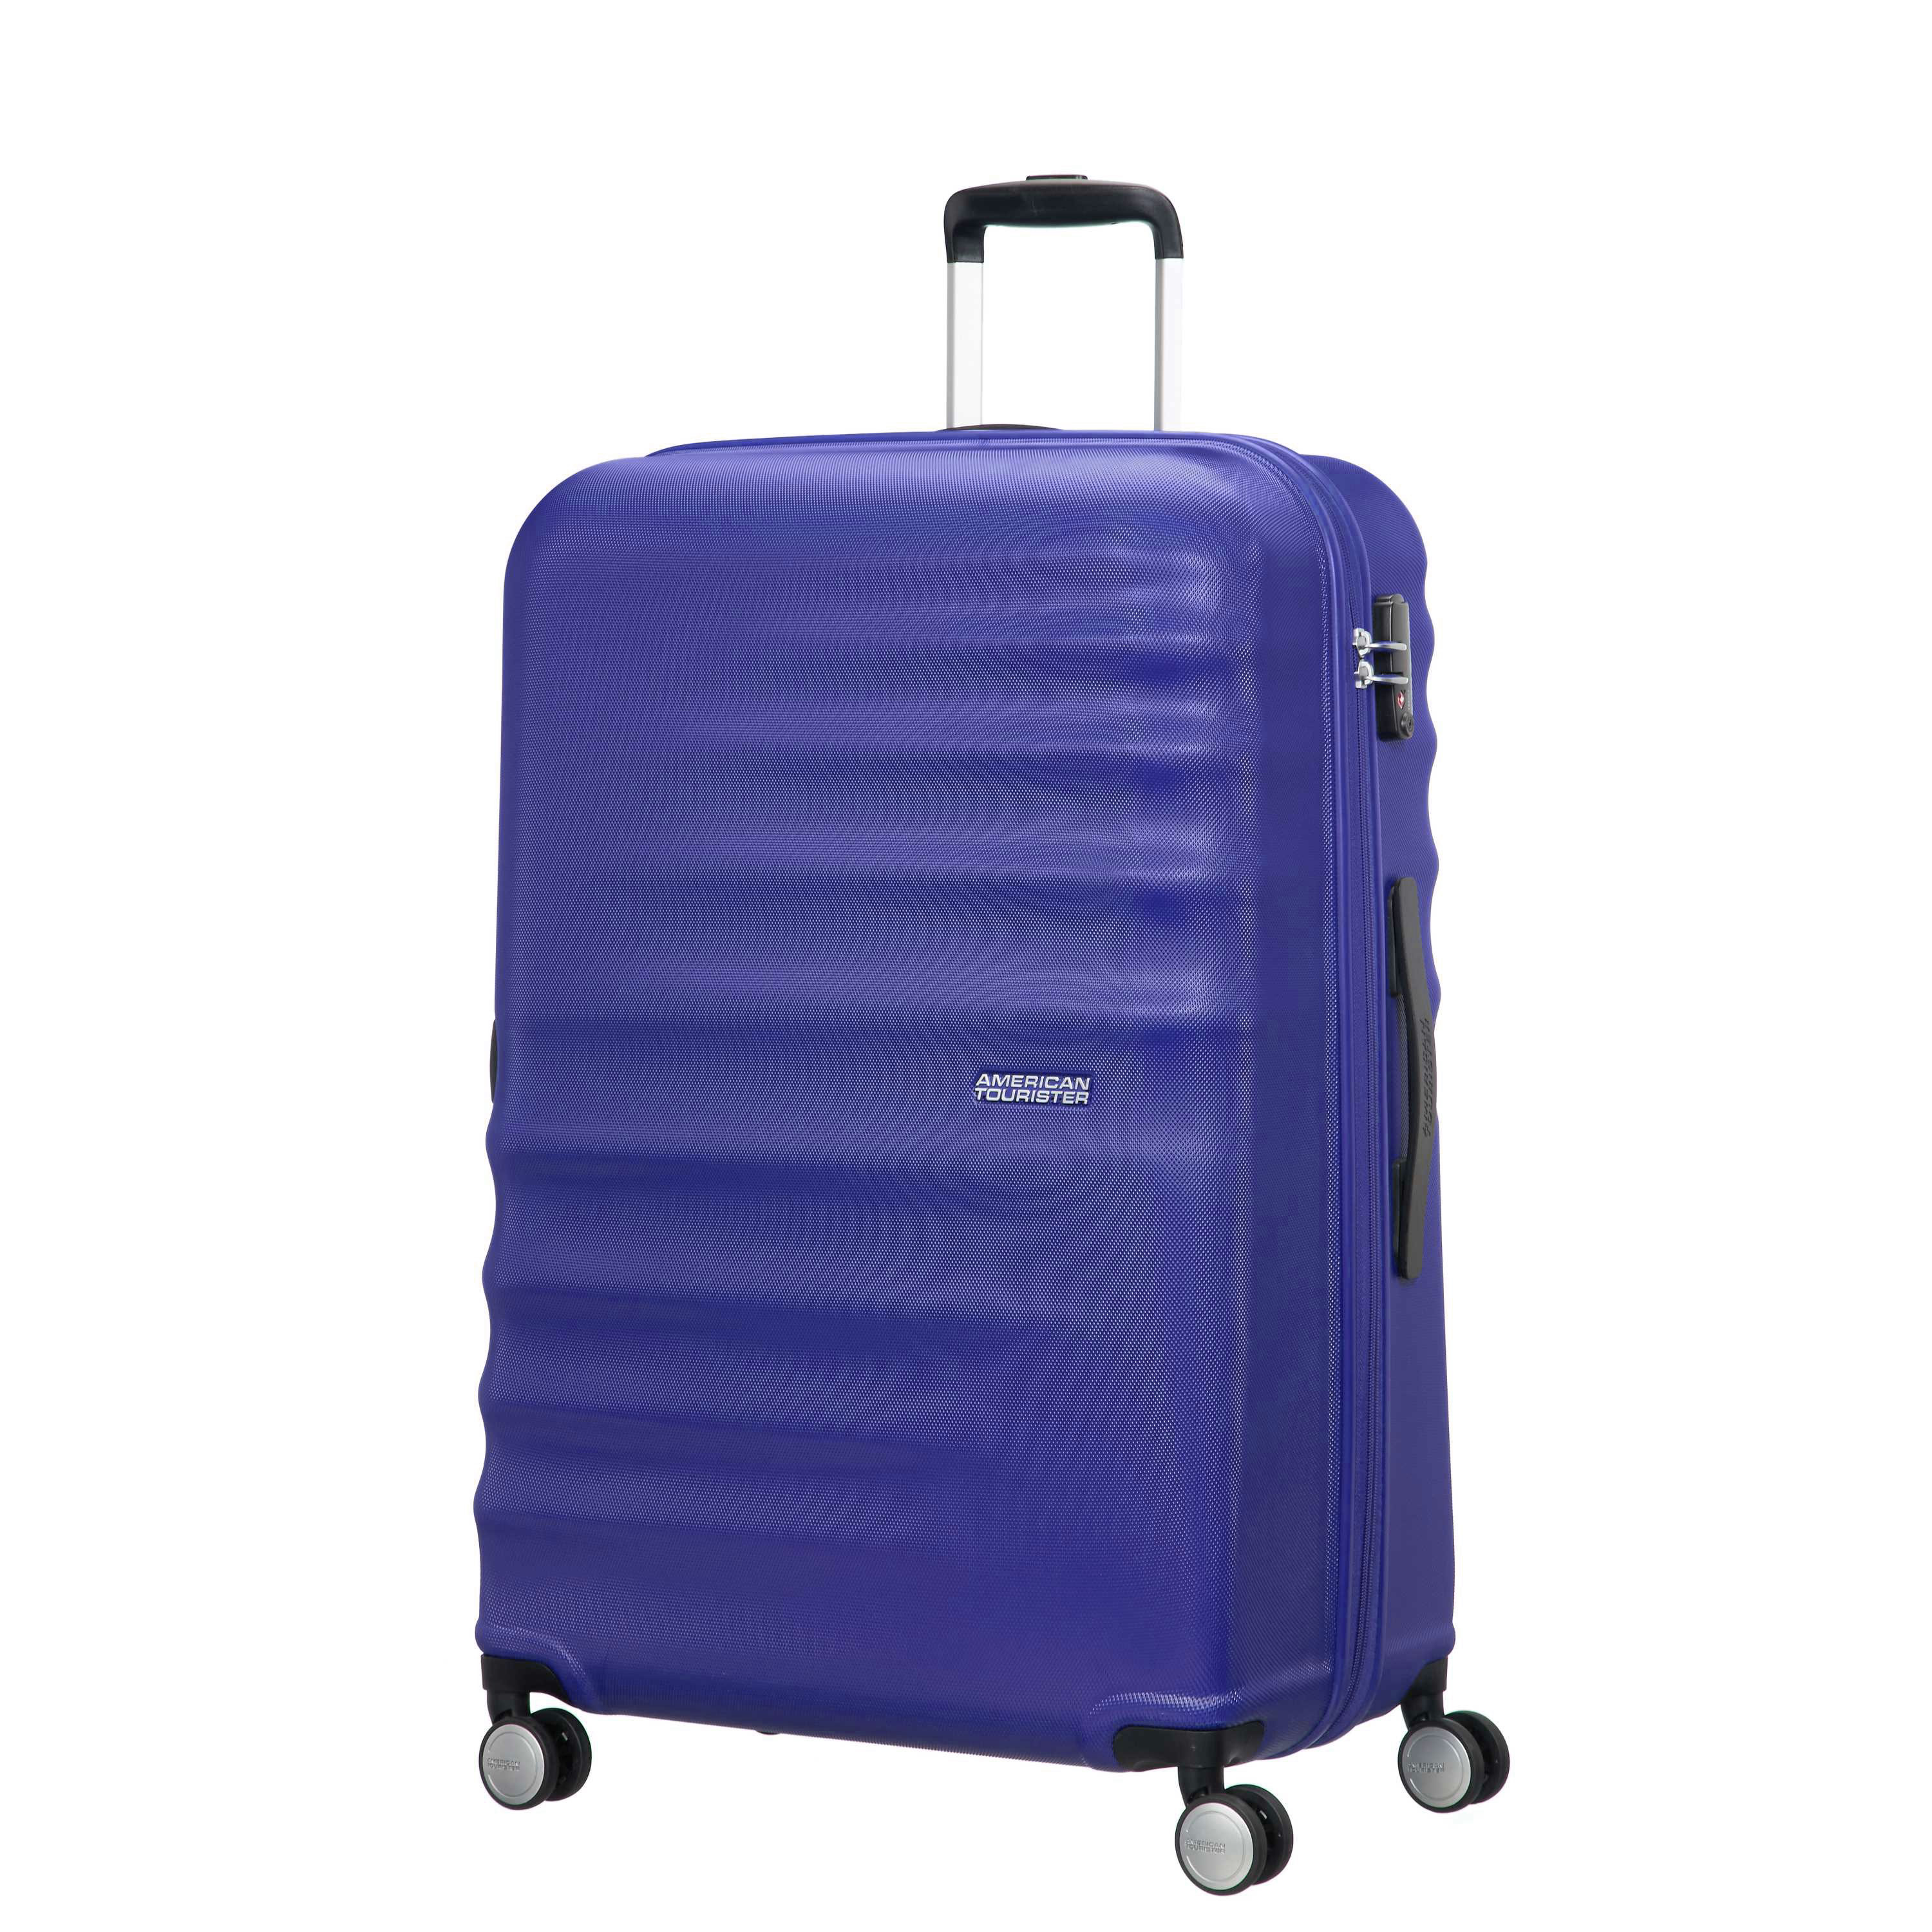 American Tourister Wavebreaker Spinner – Luggage | MartLocal American Tourister